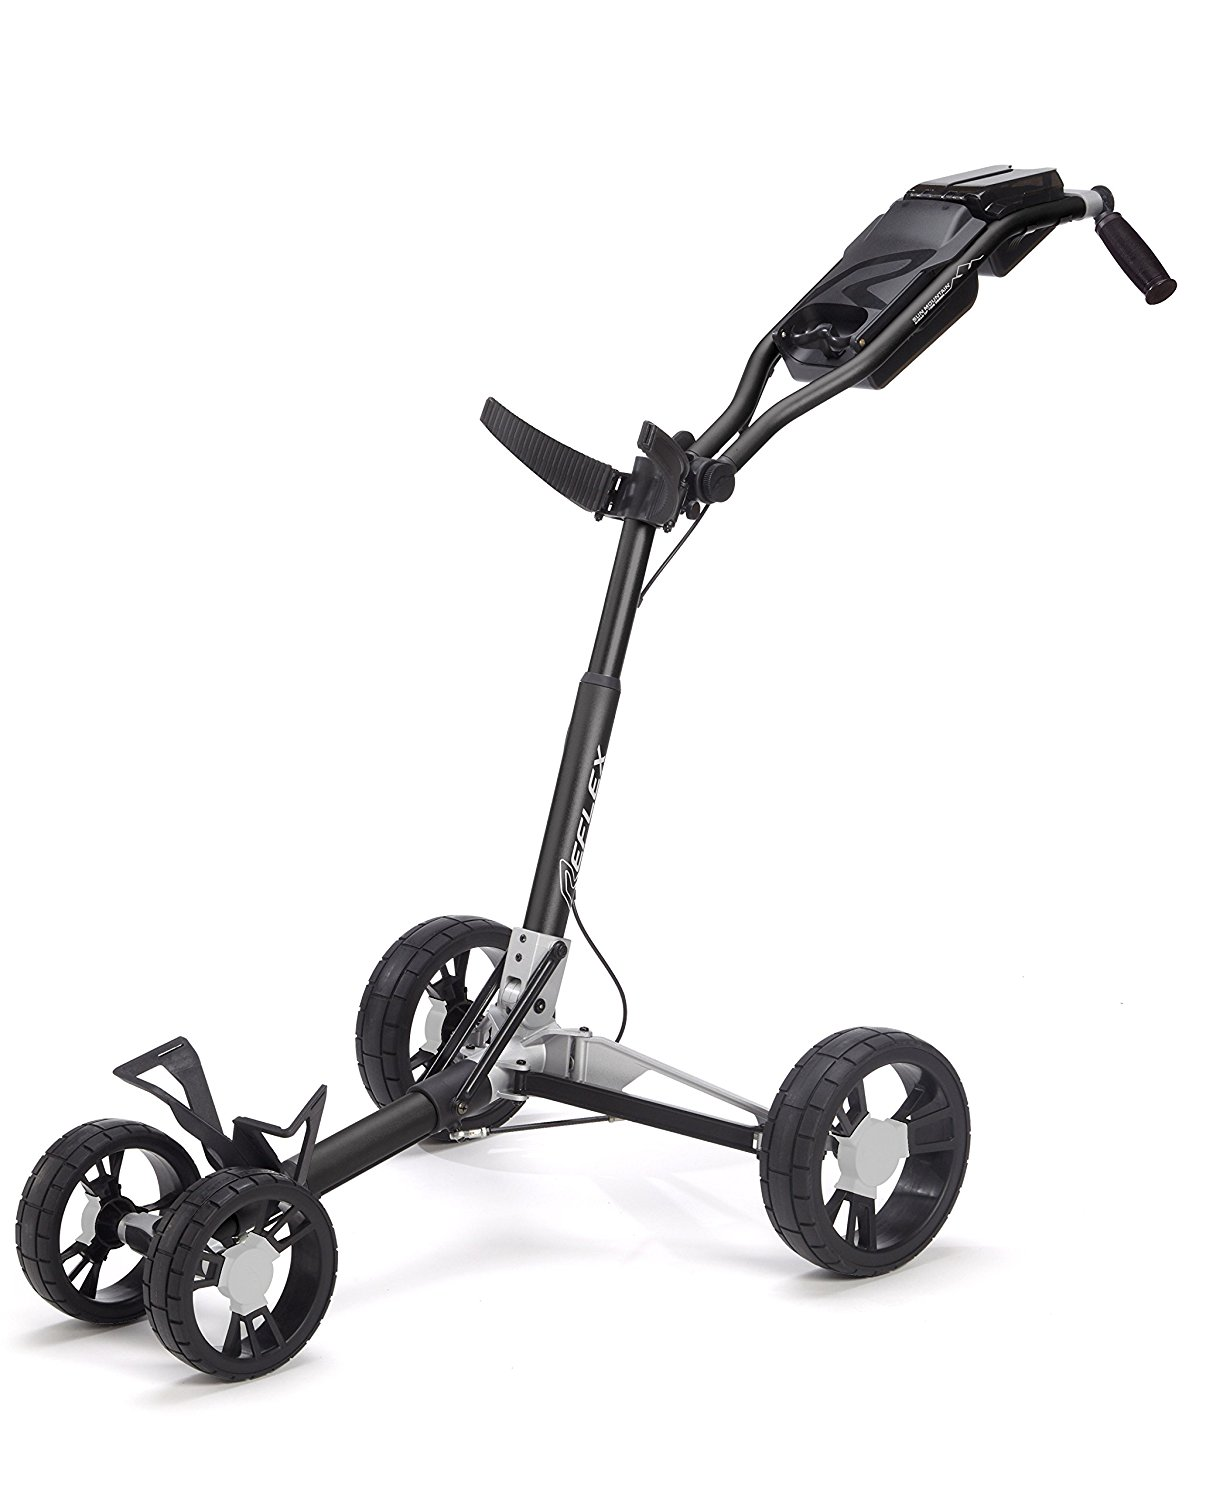 Sun Mountain Reflex Golf Push Carts